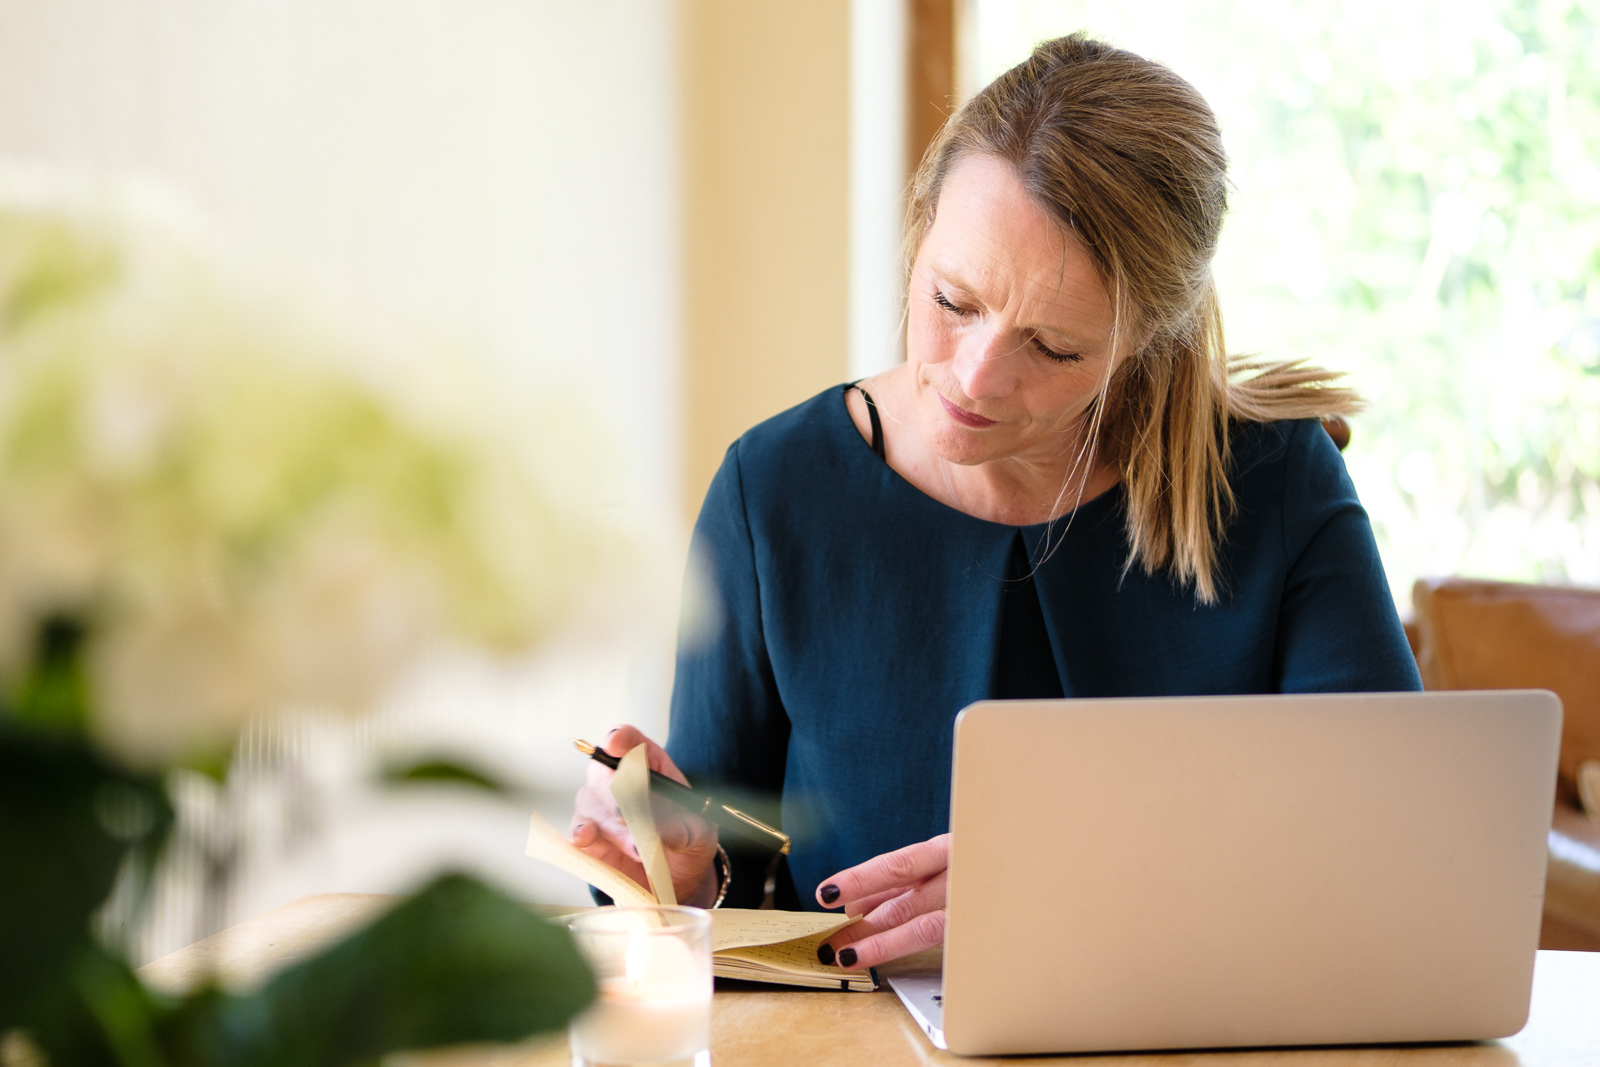 Personal Branding Photography - with Cathy Biggs of Limelight Bath working at home